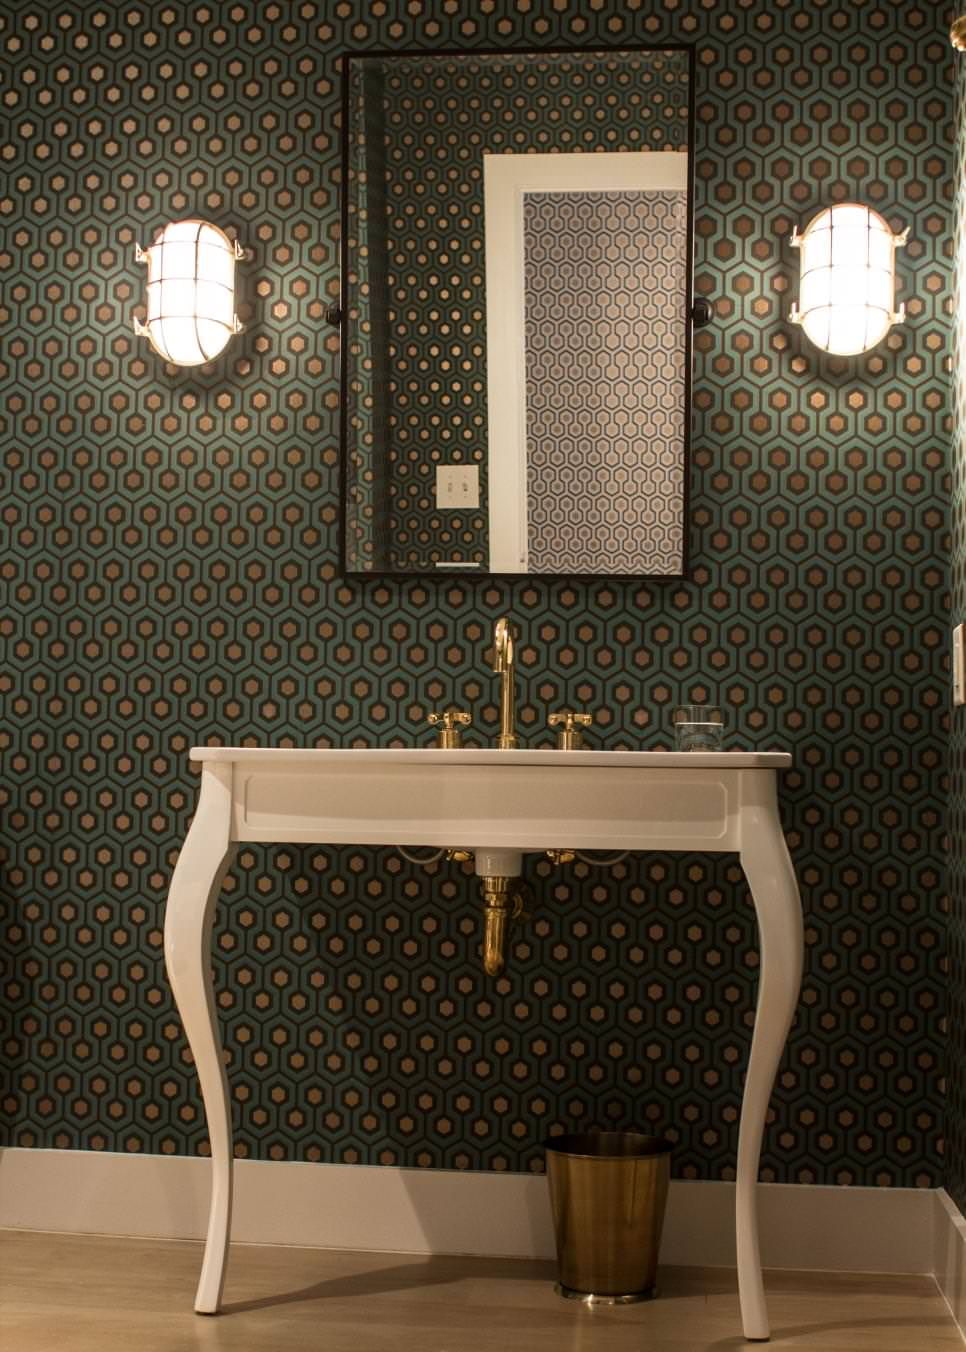 24 Bathroom Pedestal Sinks Ideas Designs Design Trends